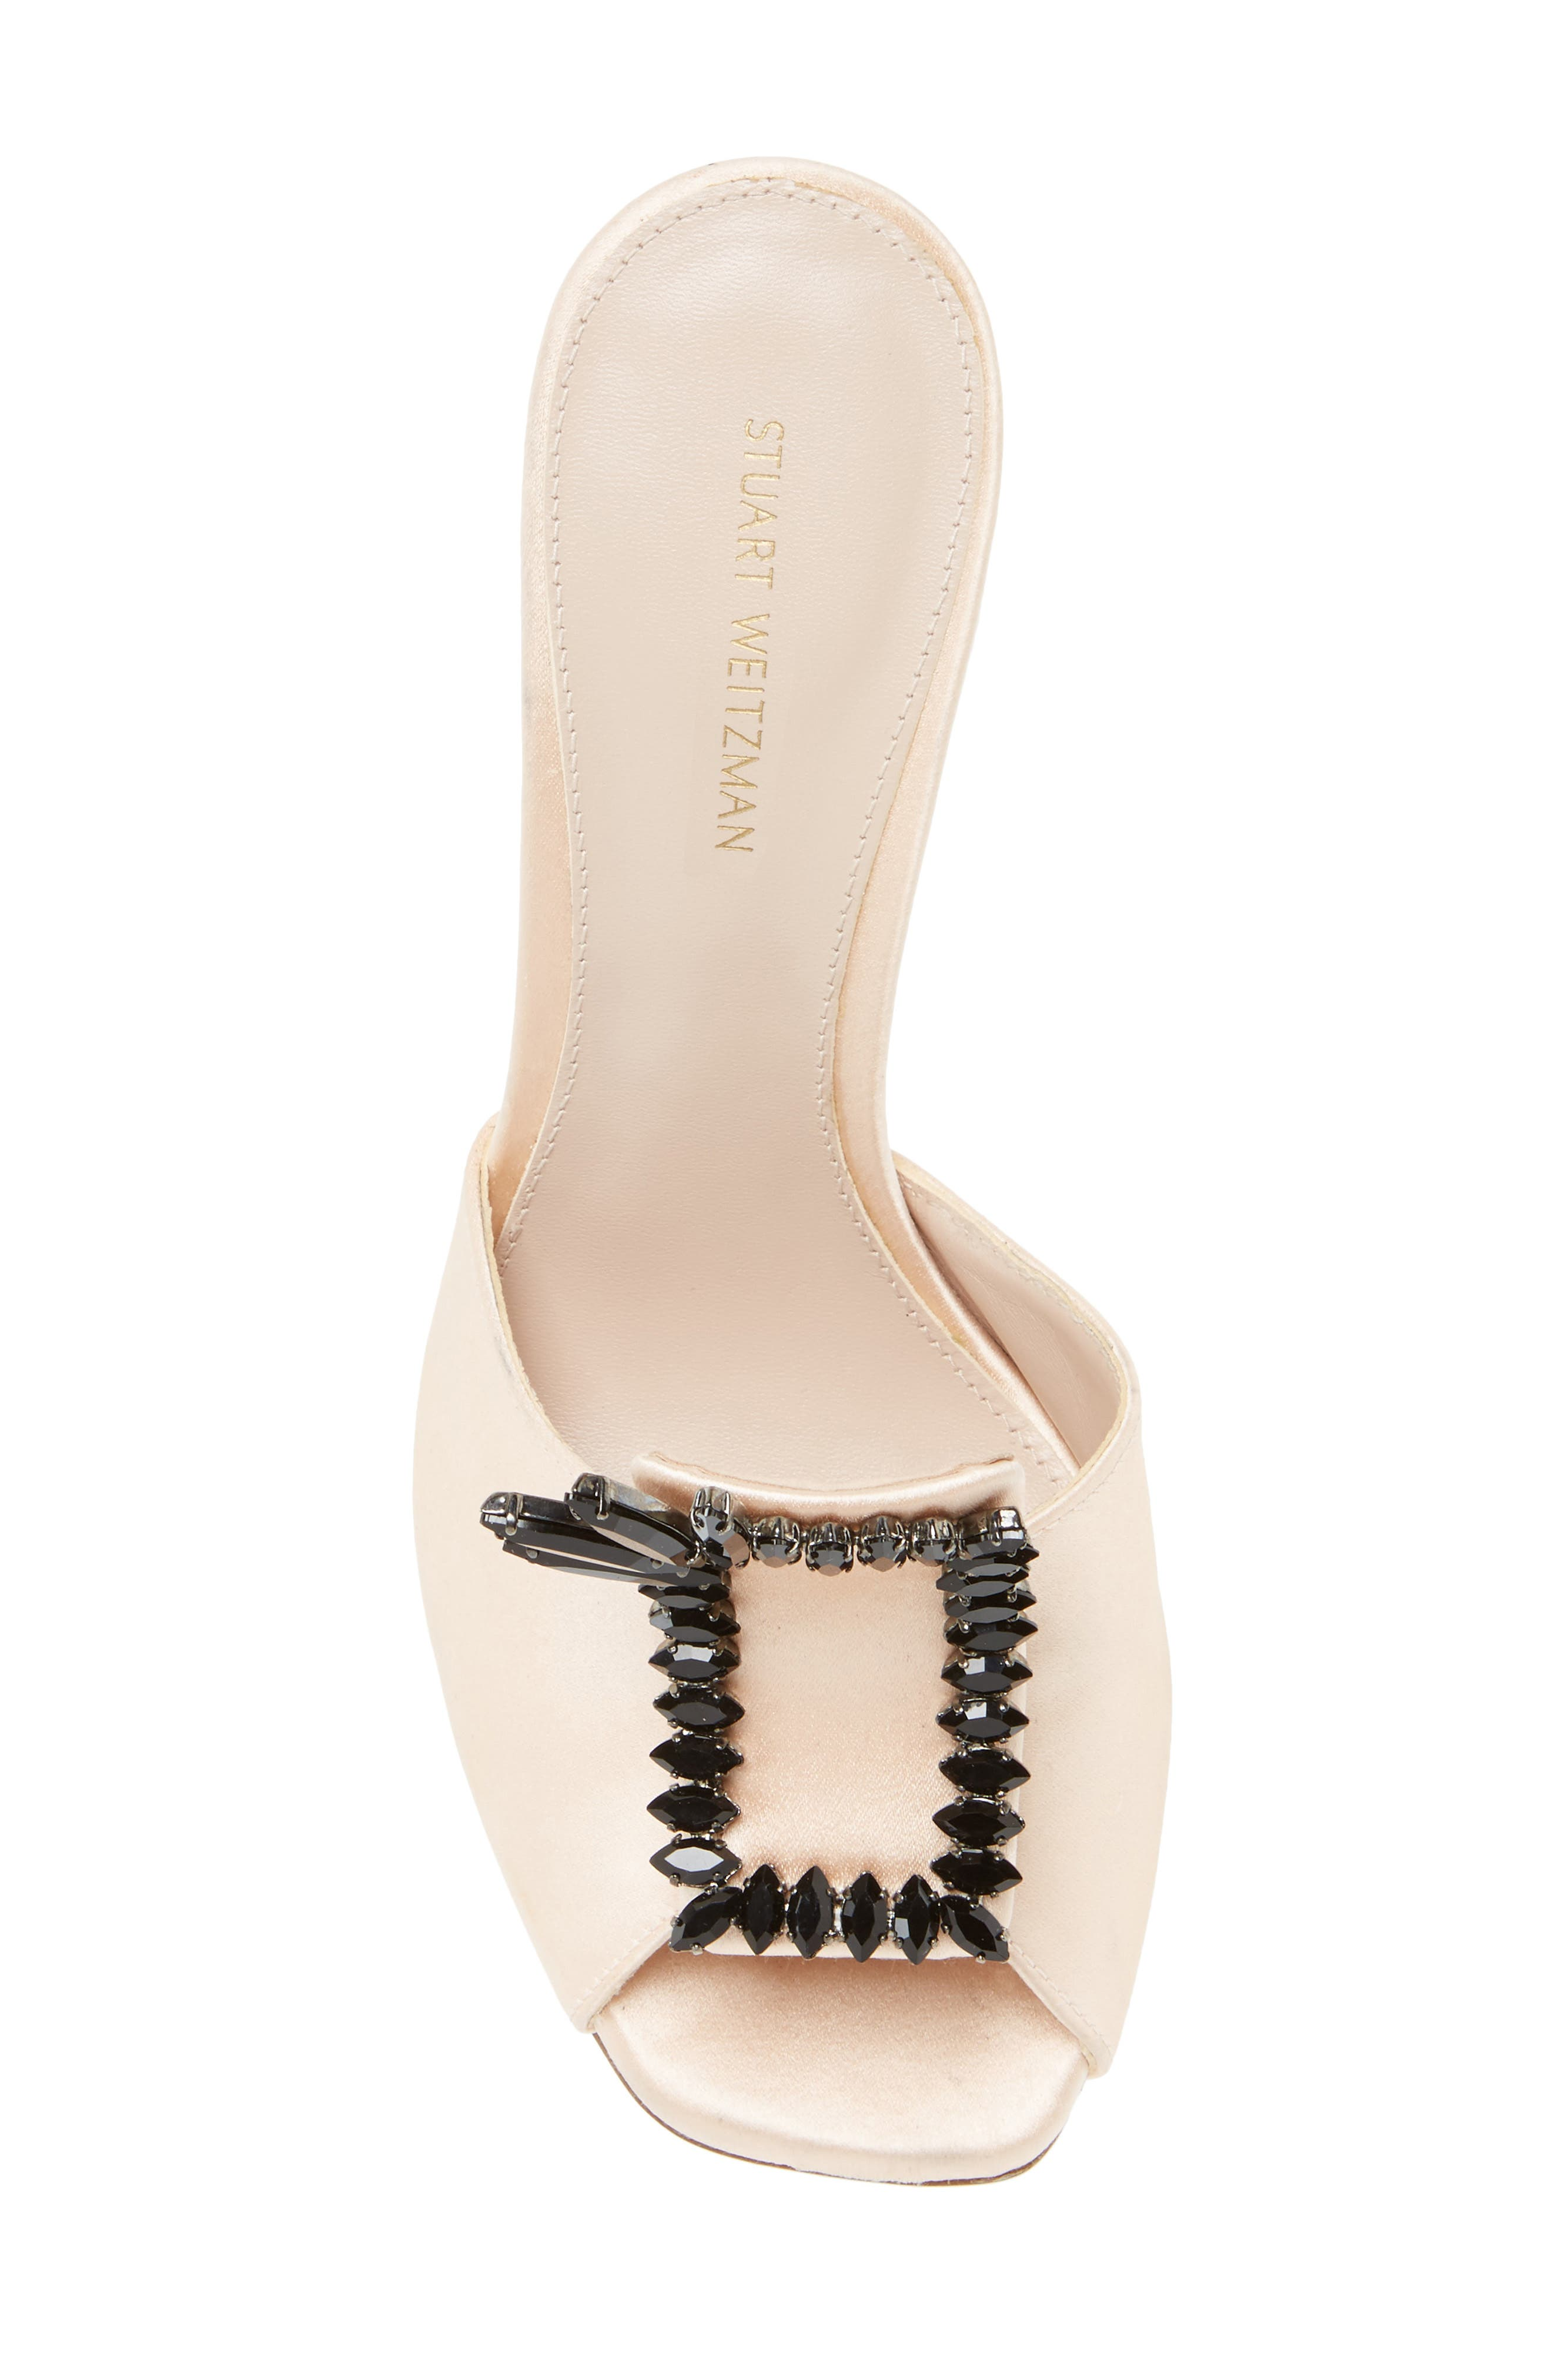 Radiance Embellished d'Orsay Sandal,                             Alternate thumbnail 5, color,                             270